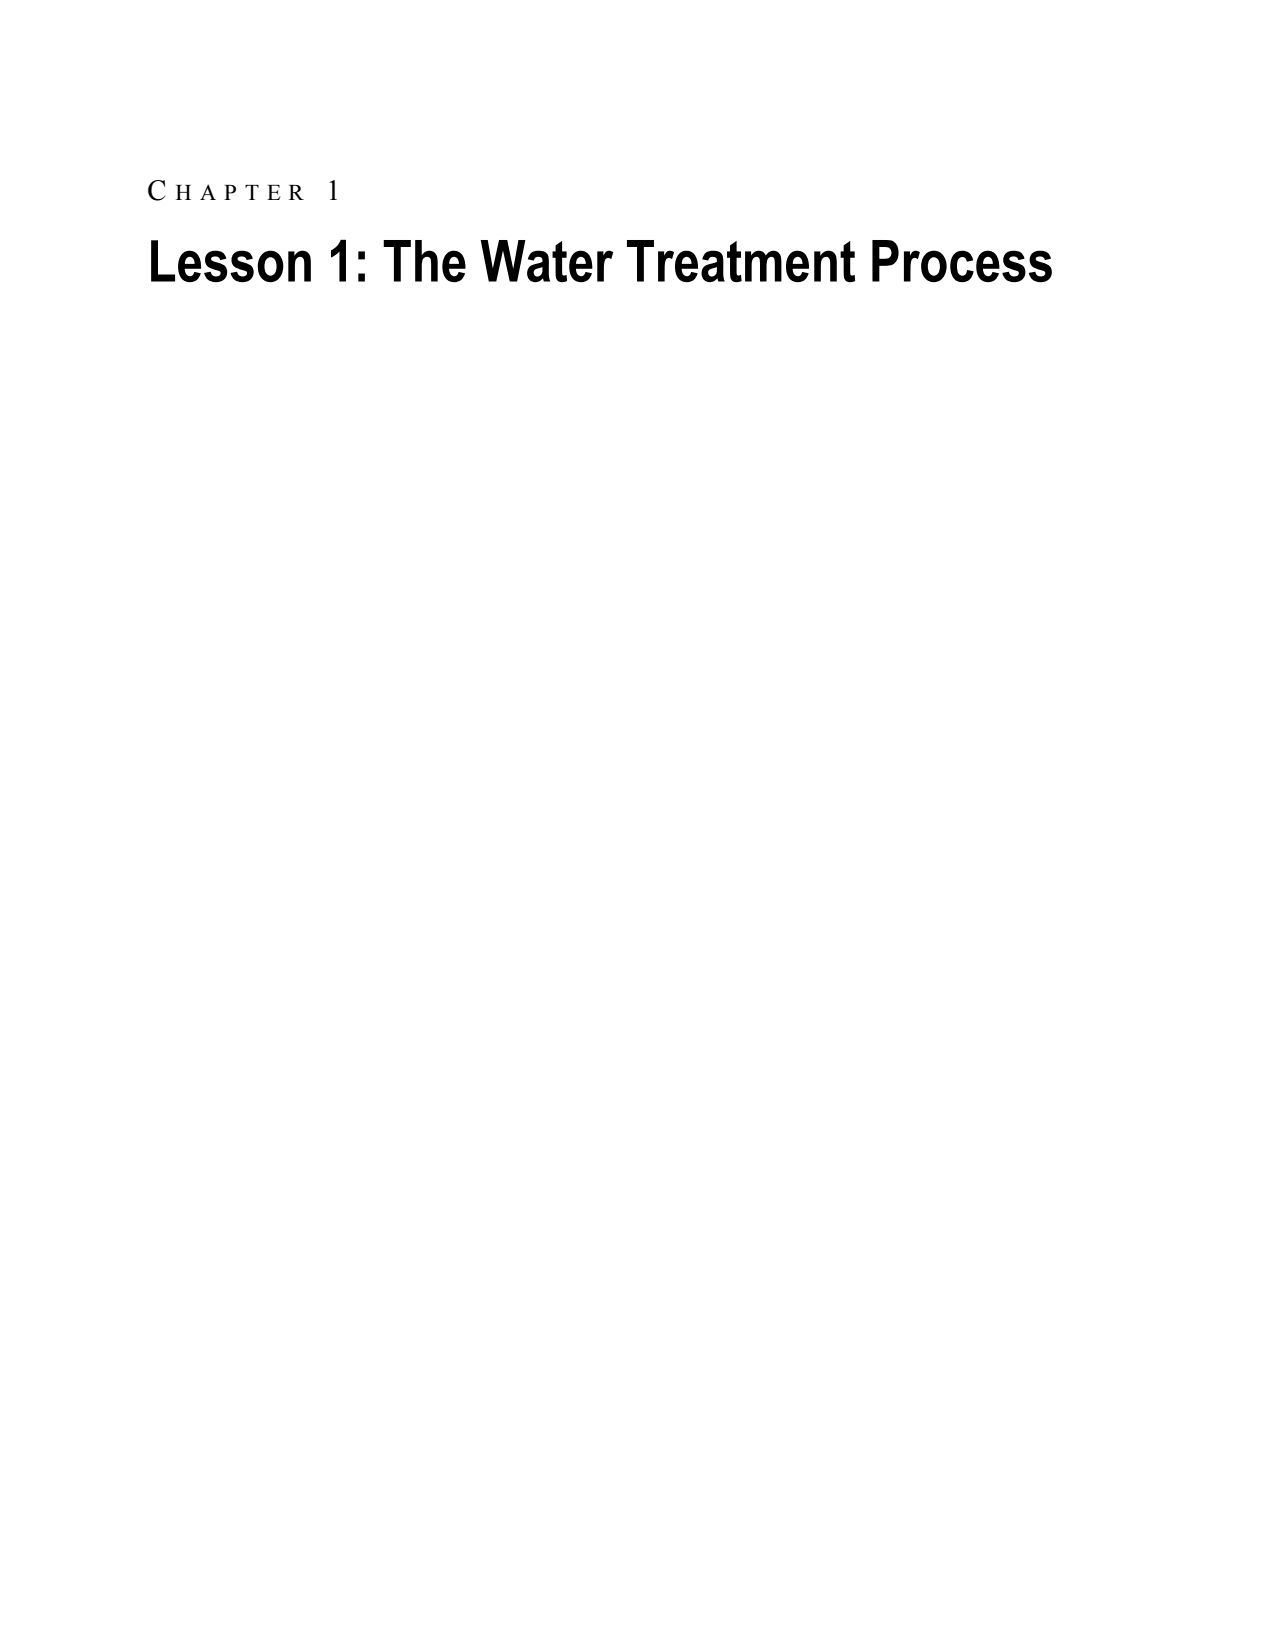 Lesson 1: Biological Testing of Water in a Stream